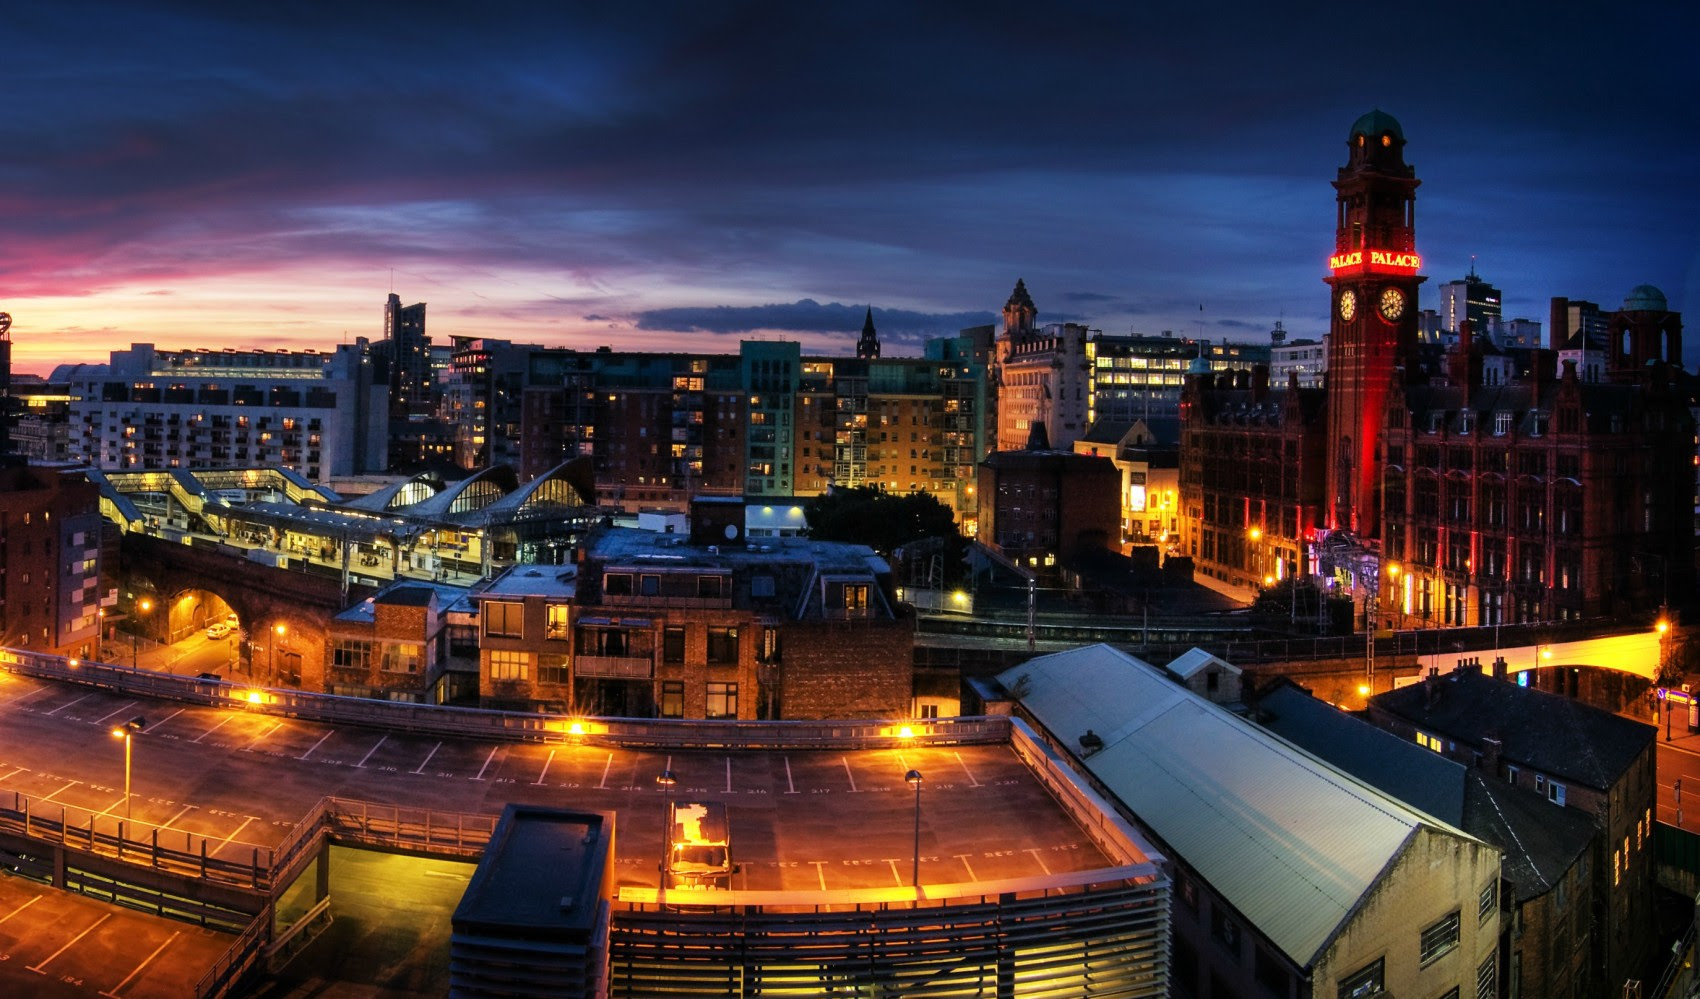 The Vibrant City of Manchester - Travel Hymns